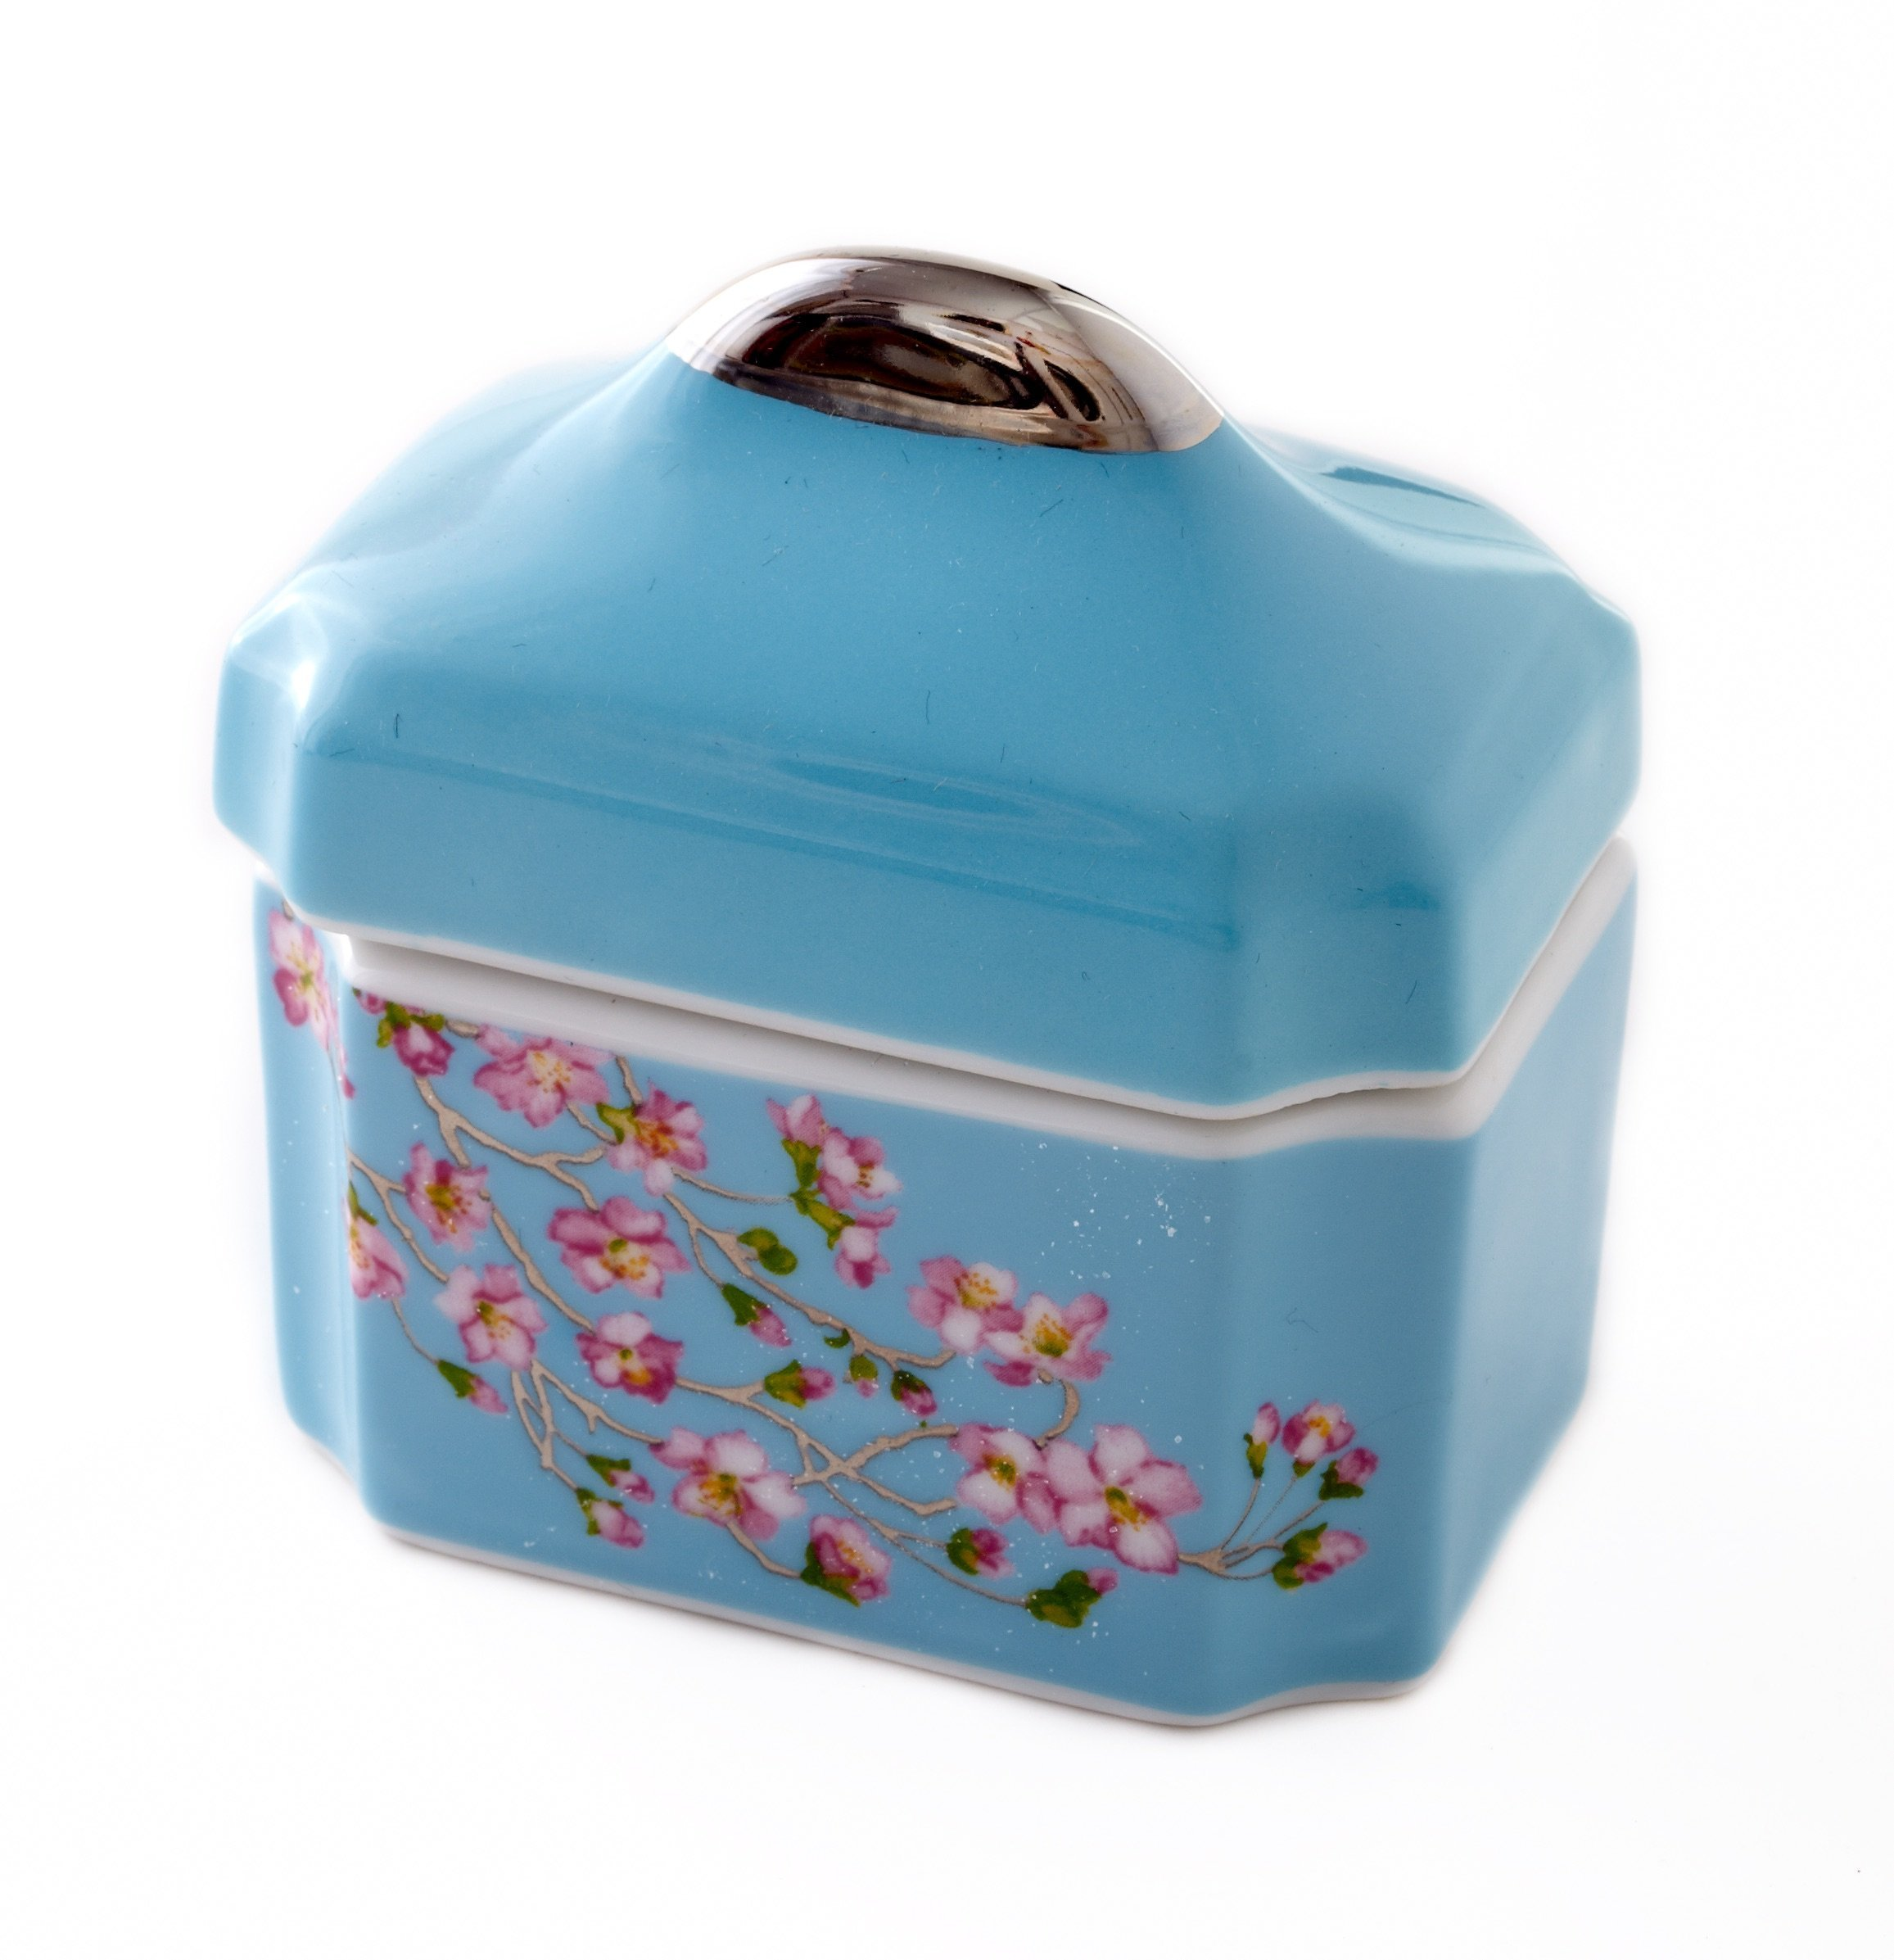 CRU by Darbie Angell Madison's April in NY Sugar Bowl, Sea Blue/Pink/Platinum/White